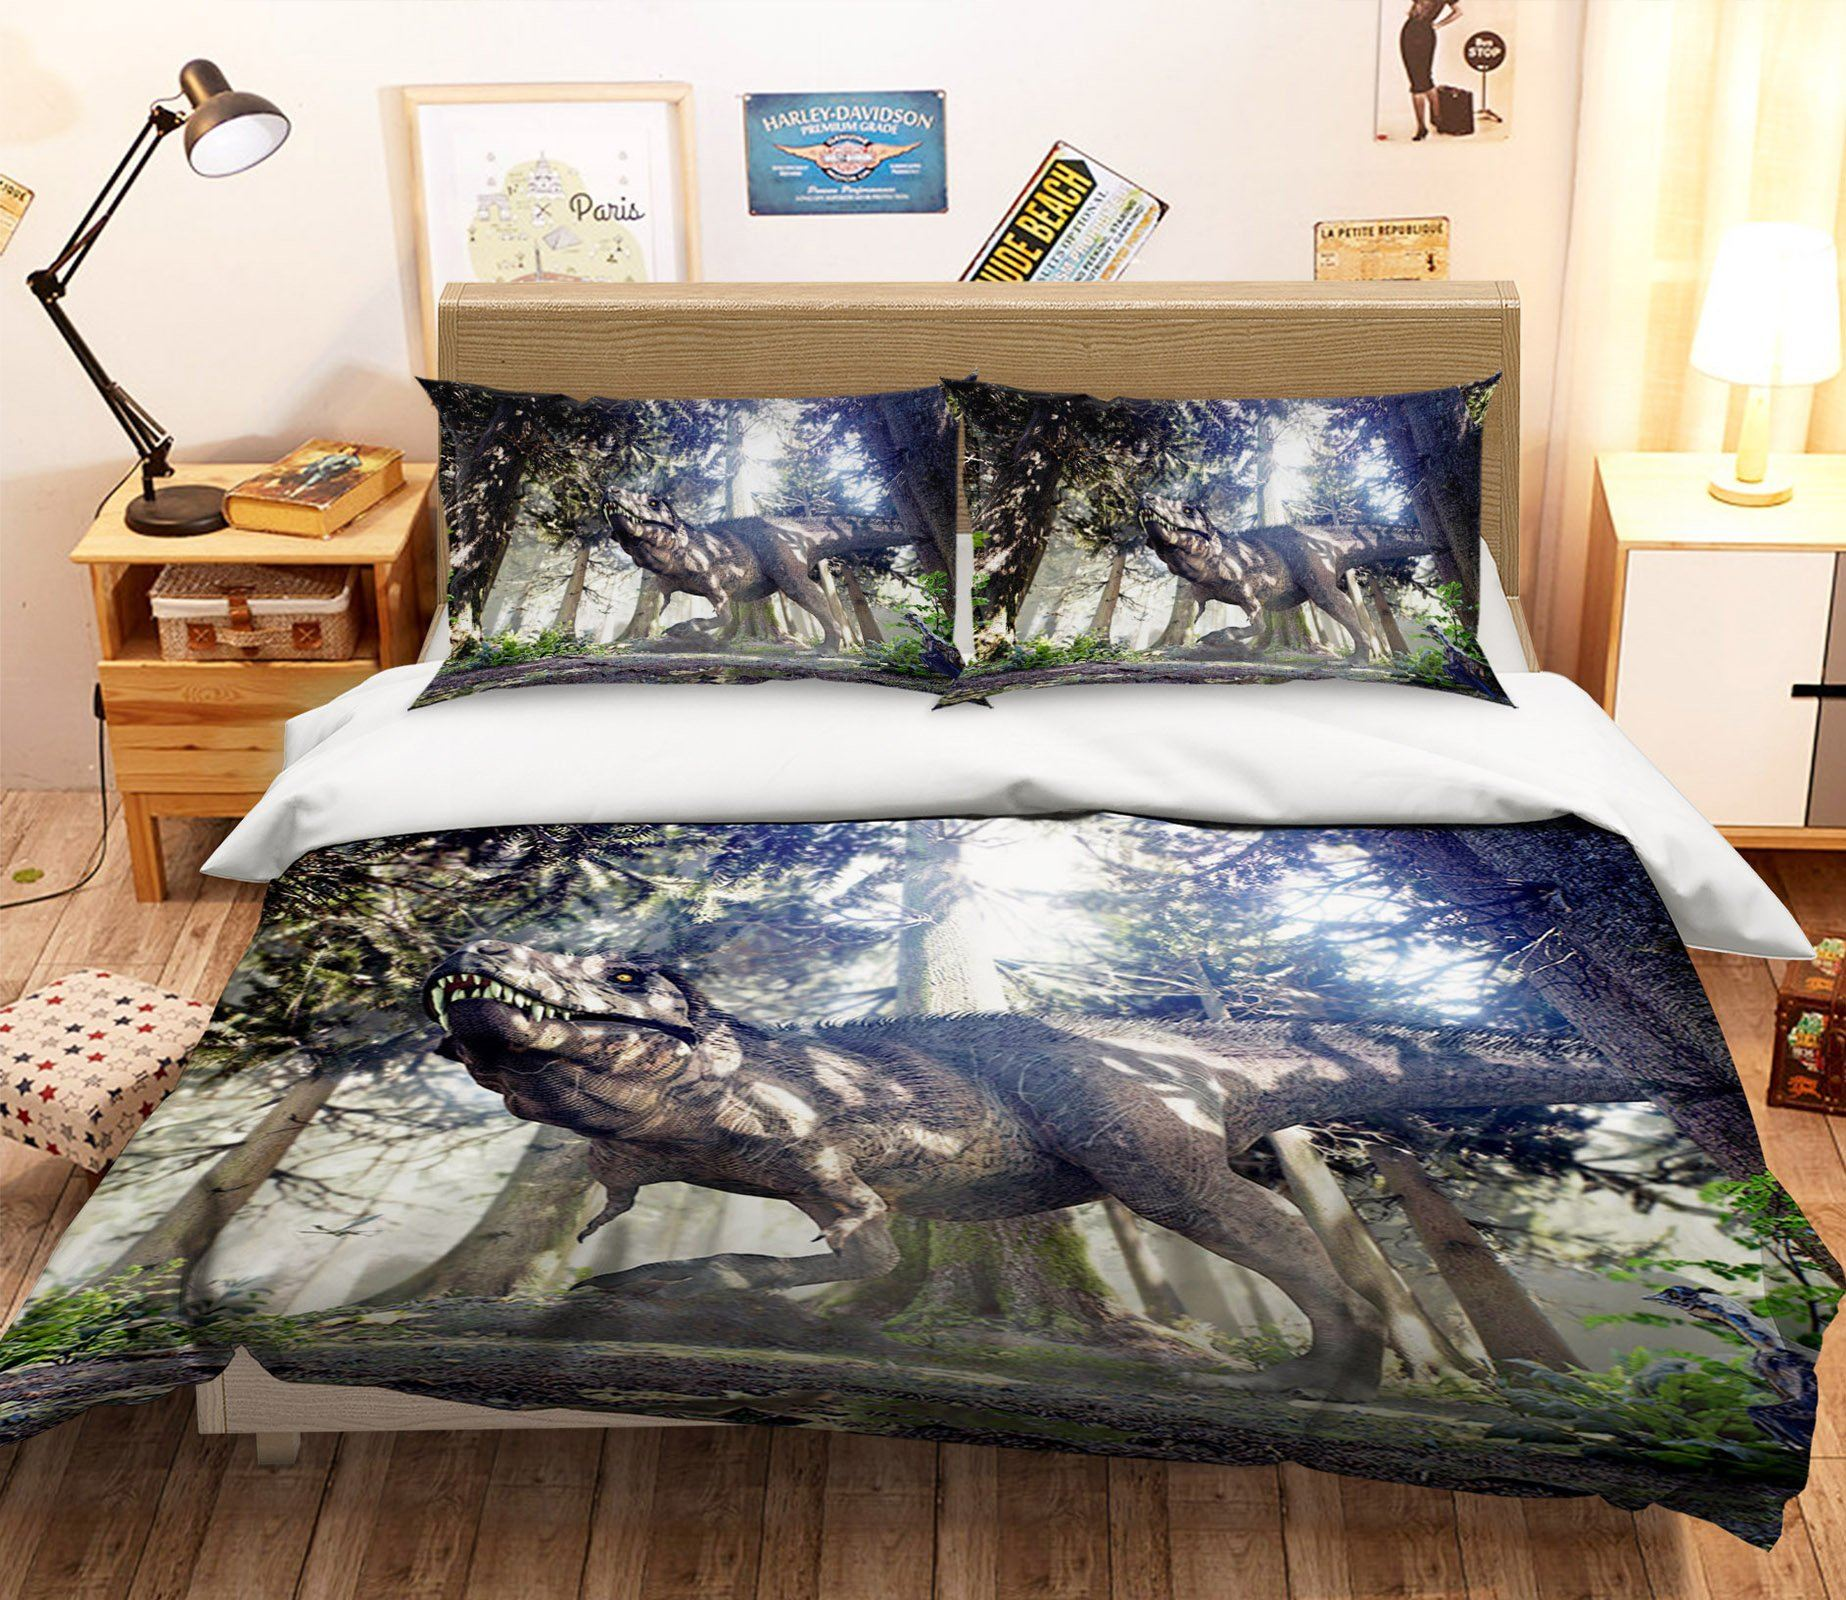 3D Woods Dinosaur 080 Bed Pillowcases Quilt Wallpaper AJ Wallpaper